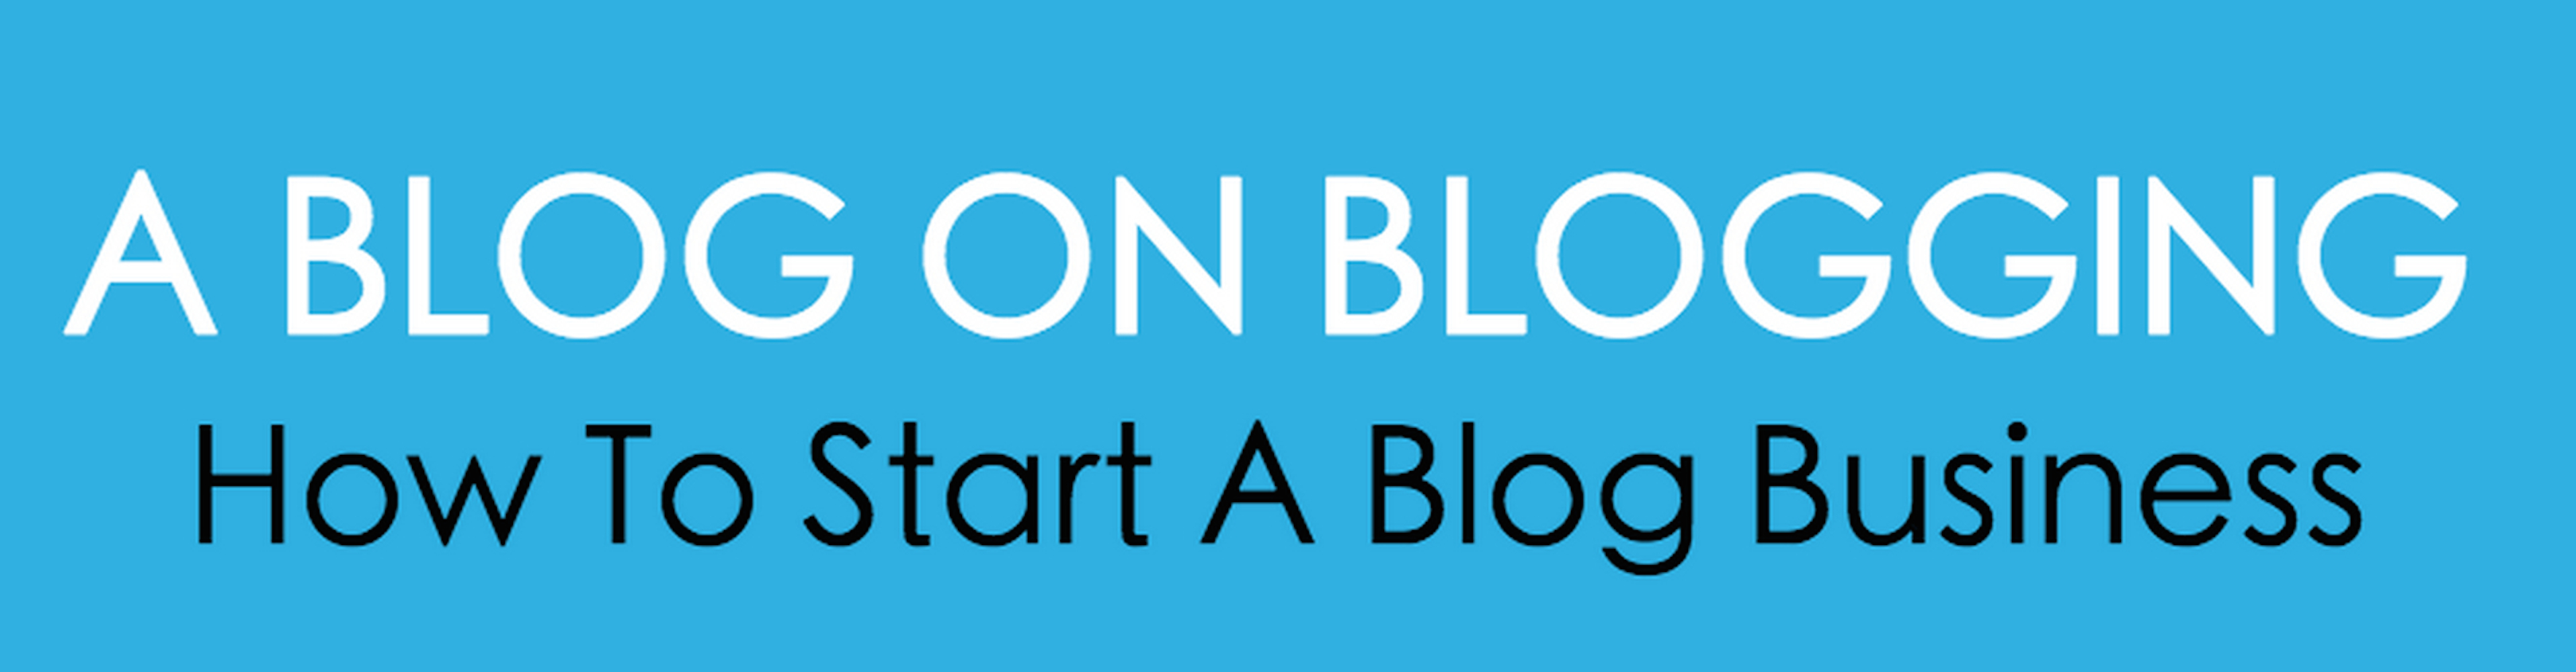 A Blog On Blogging